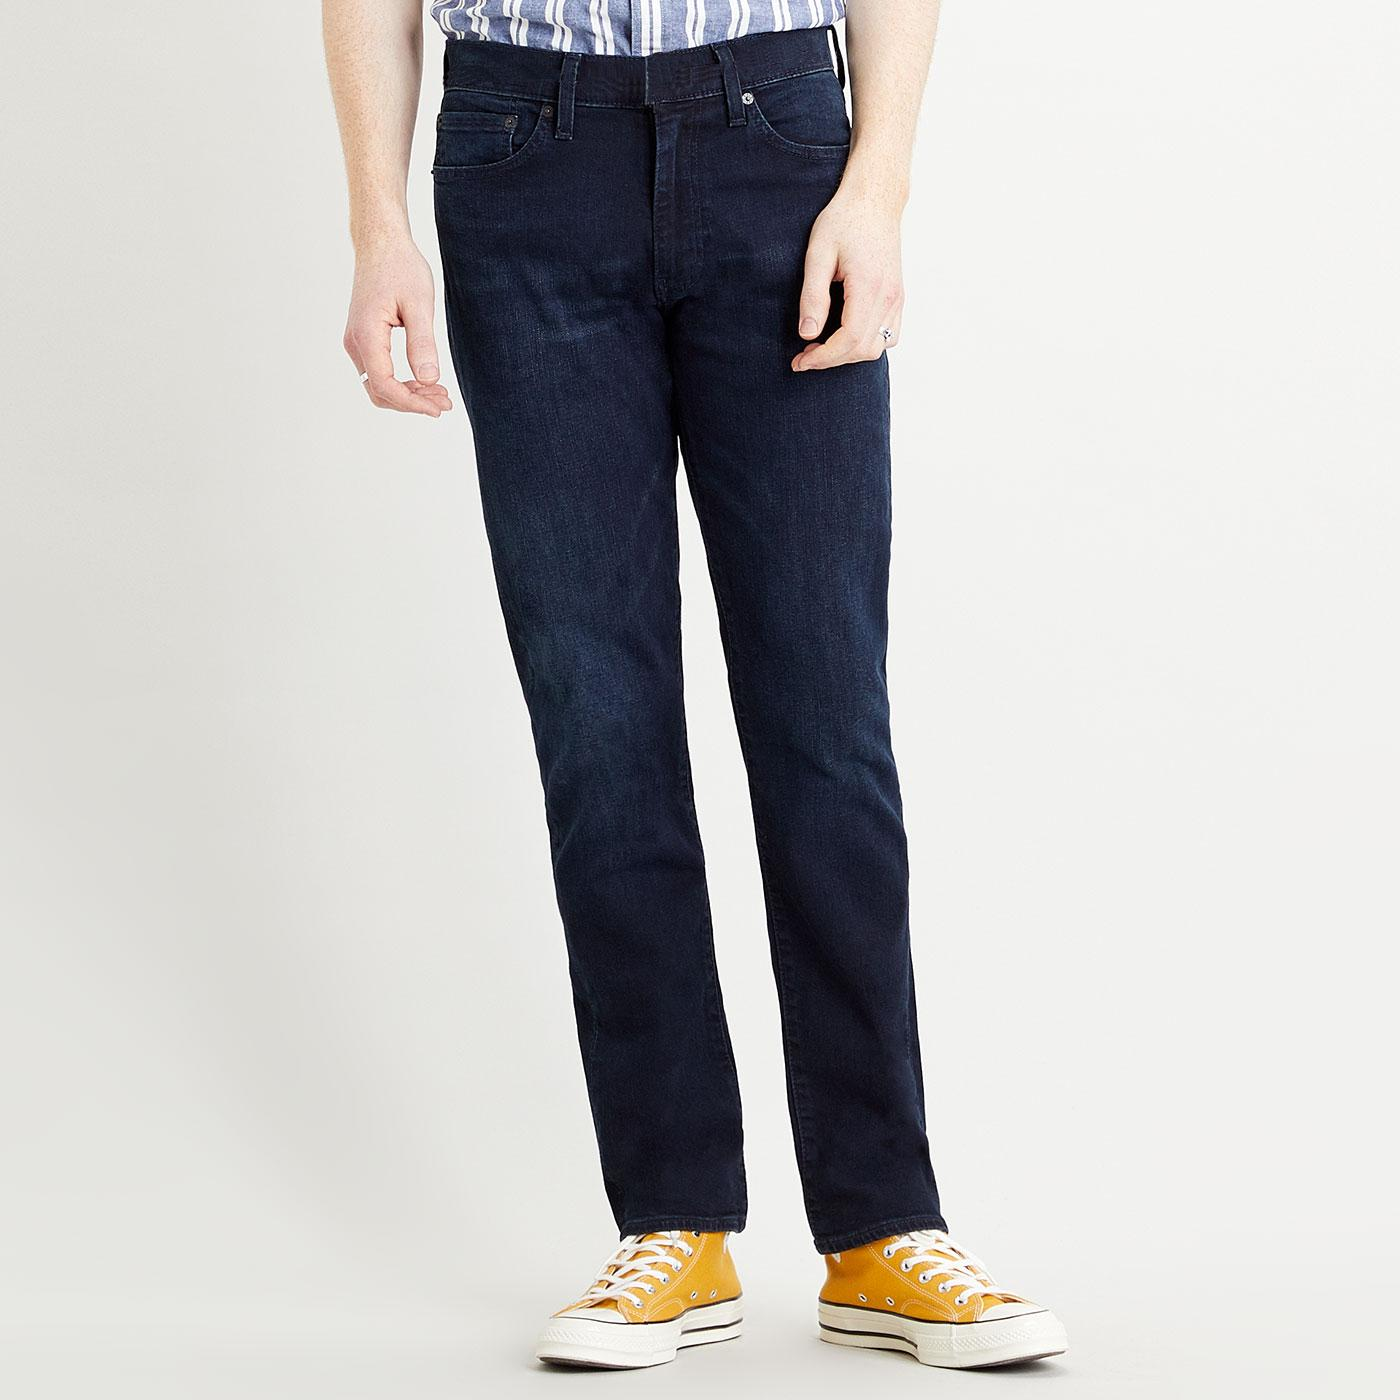 LEVI'S 511 Slim Dark Denim Jeans (Blue Ridge Adv)